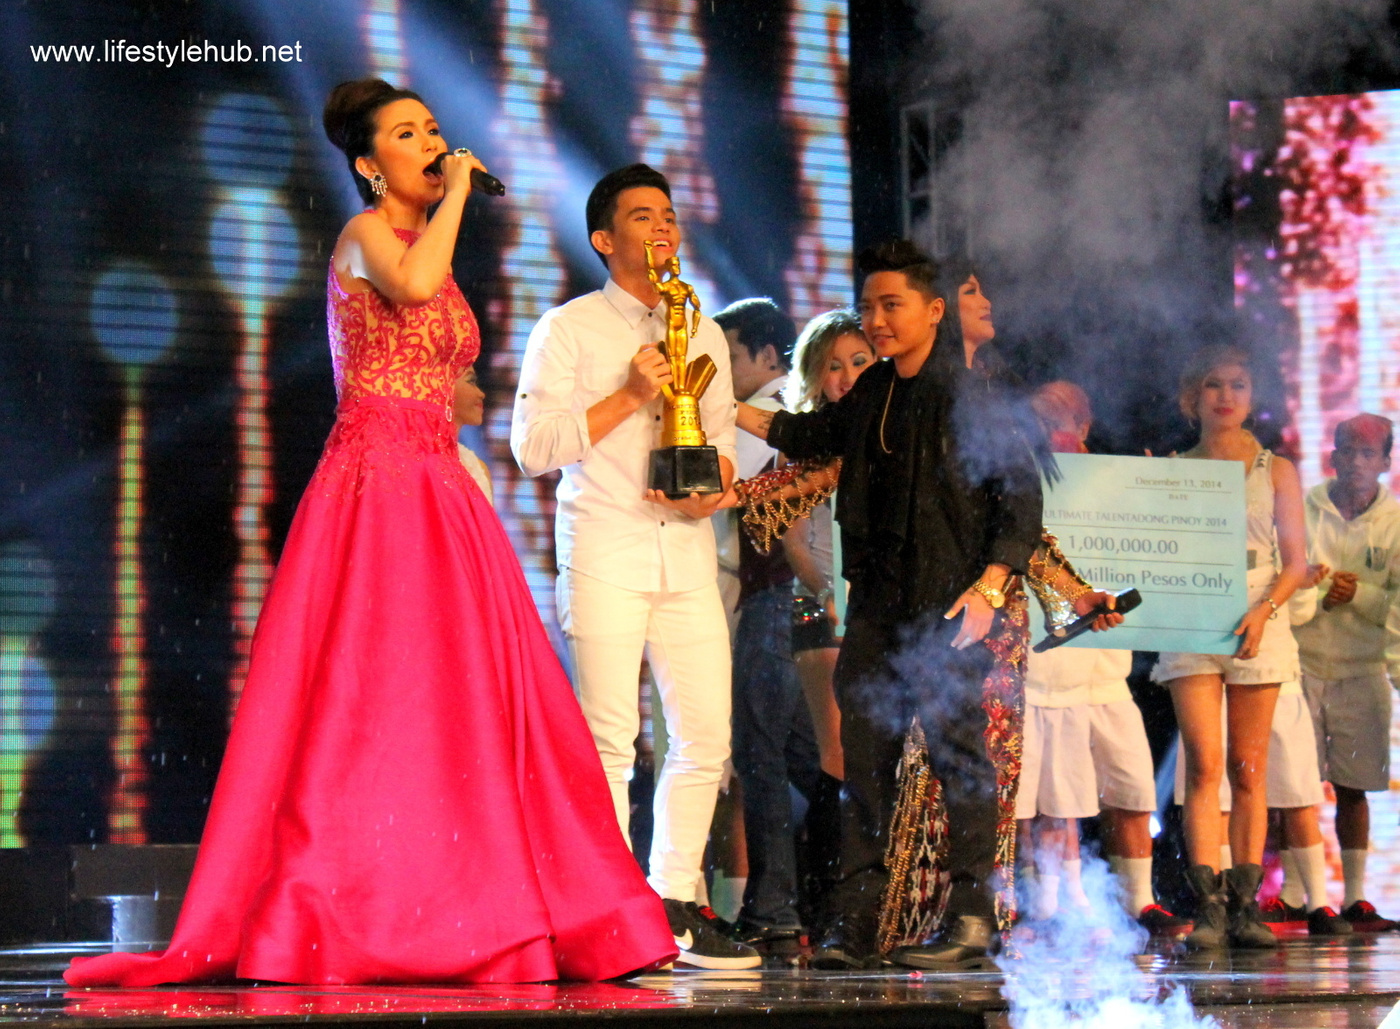 Talentadong Pinoy 2014 Grand Finals